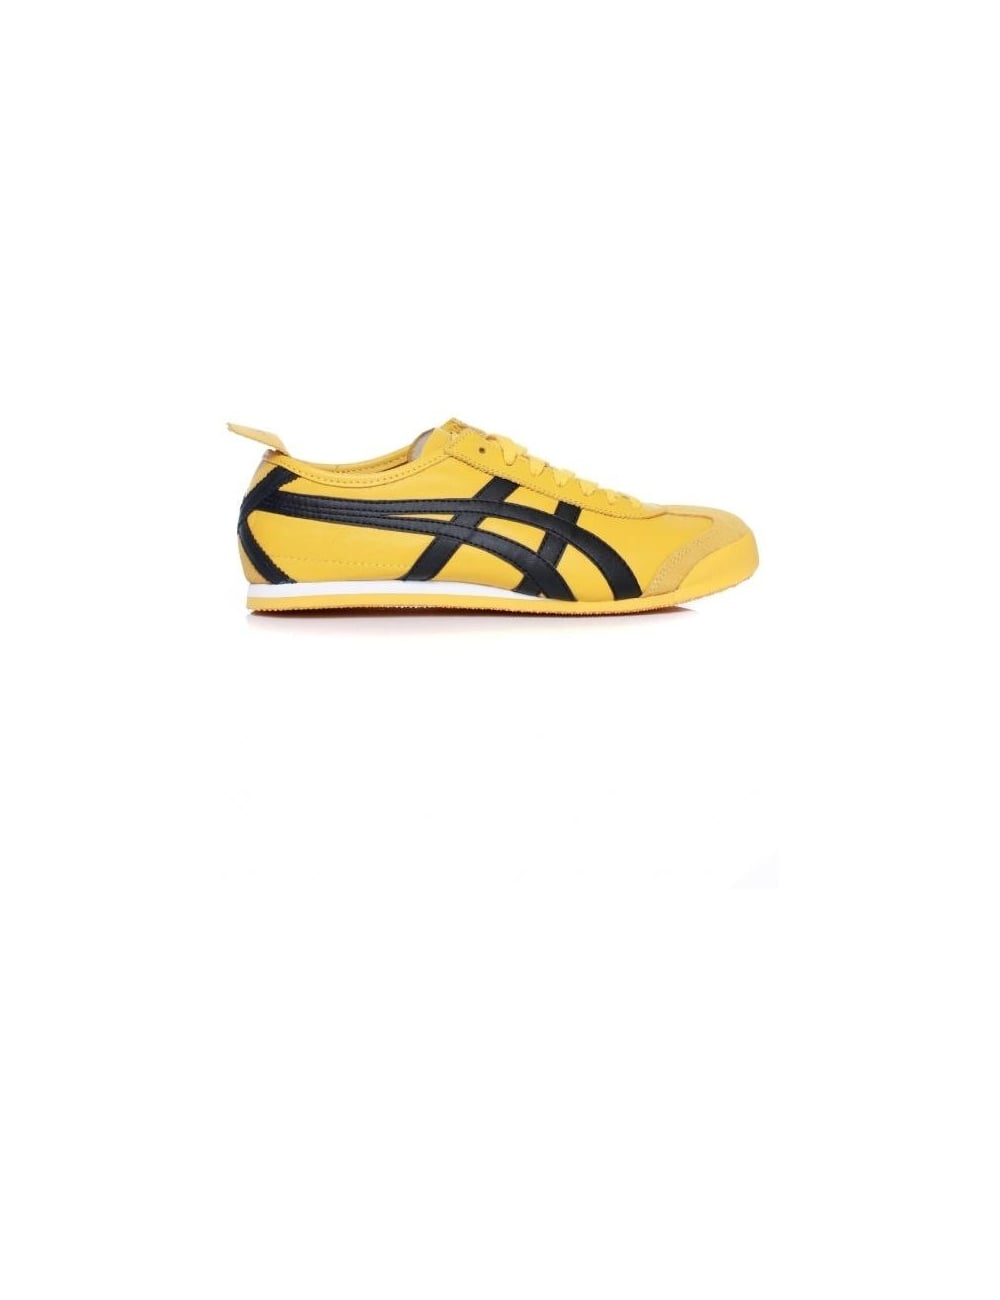 new product 312f1 ffa0b Mexico 66 - Yellow/Black